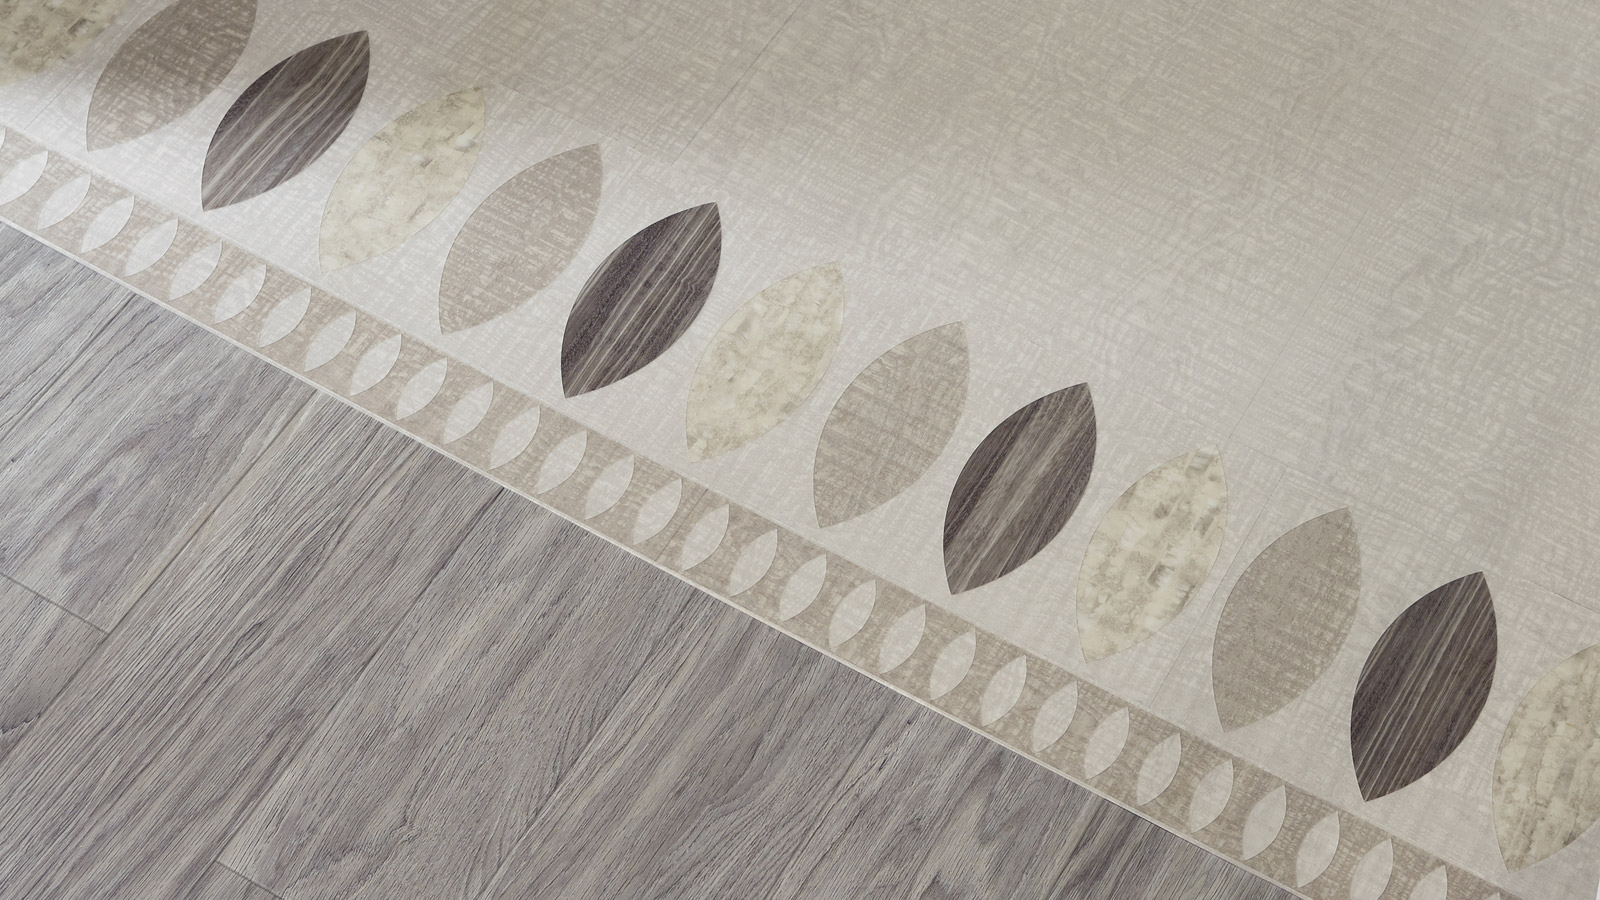 Ellipse Grand border created with Amtico Signature LVT in Cirrus Air, Alchemy Haze, Shibori Jasmine and Cirrus Mist